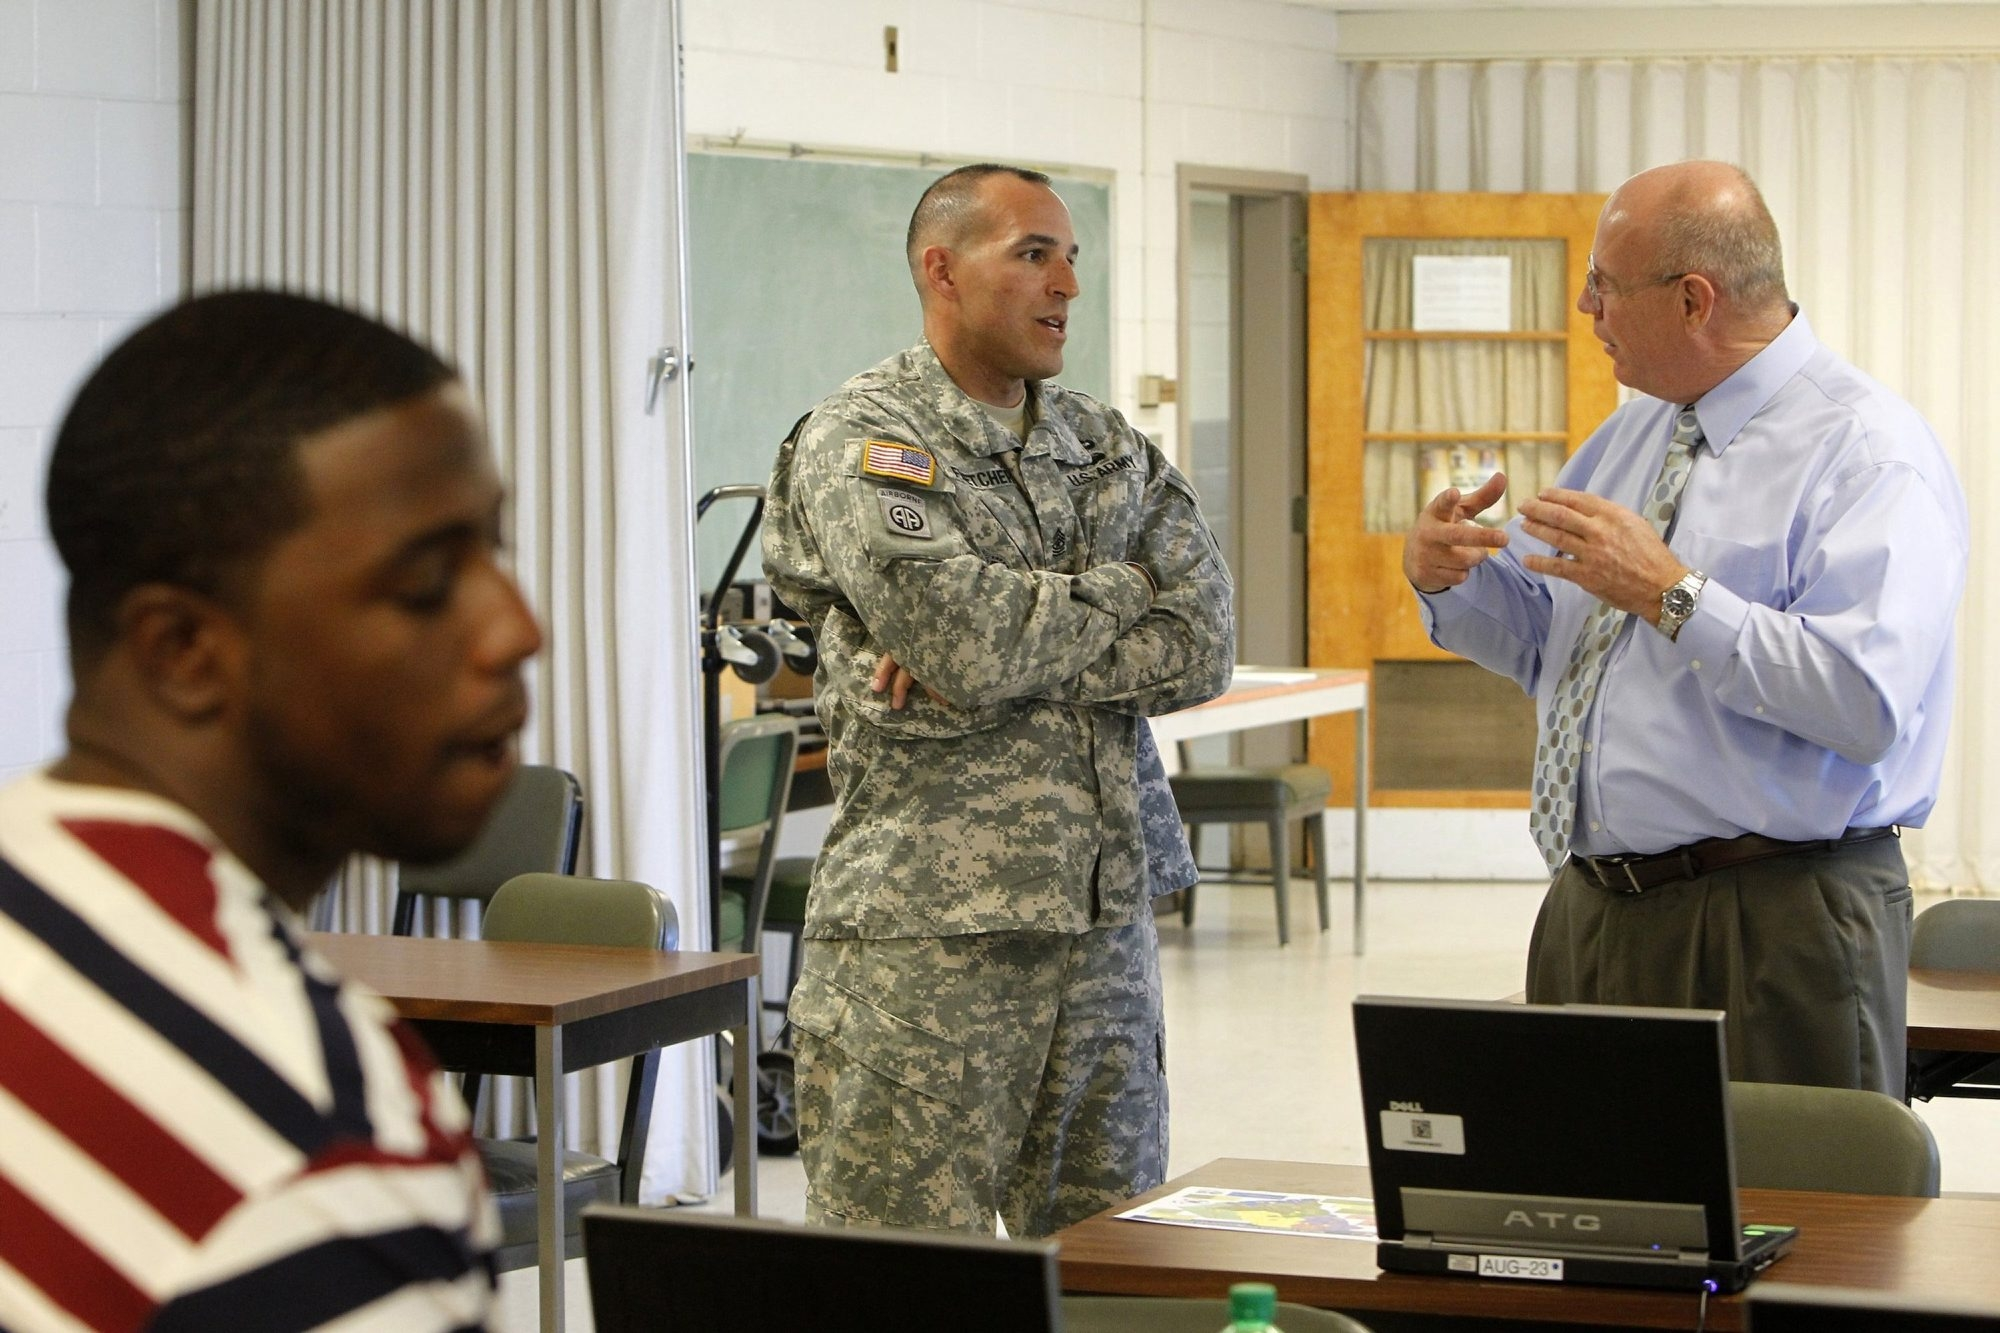 Army Sgt. Maj. Chris Fletcher, center, talks with instructor Duane Norell during a resume-writing course offered as part of the South Carolina National Guard employment services division. Fletcher will enter the civilian job market later this year. With the military downsizing, many soldiers, airmen and Marines will have to do the same.